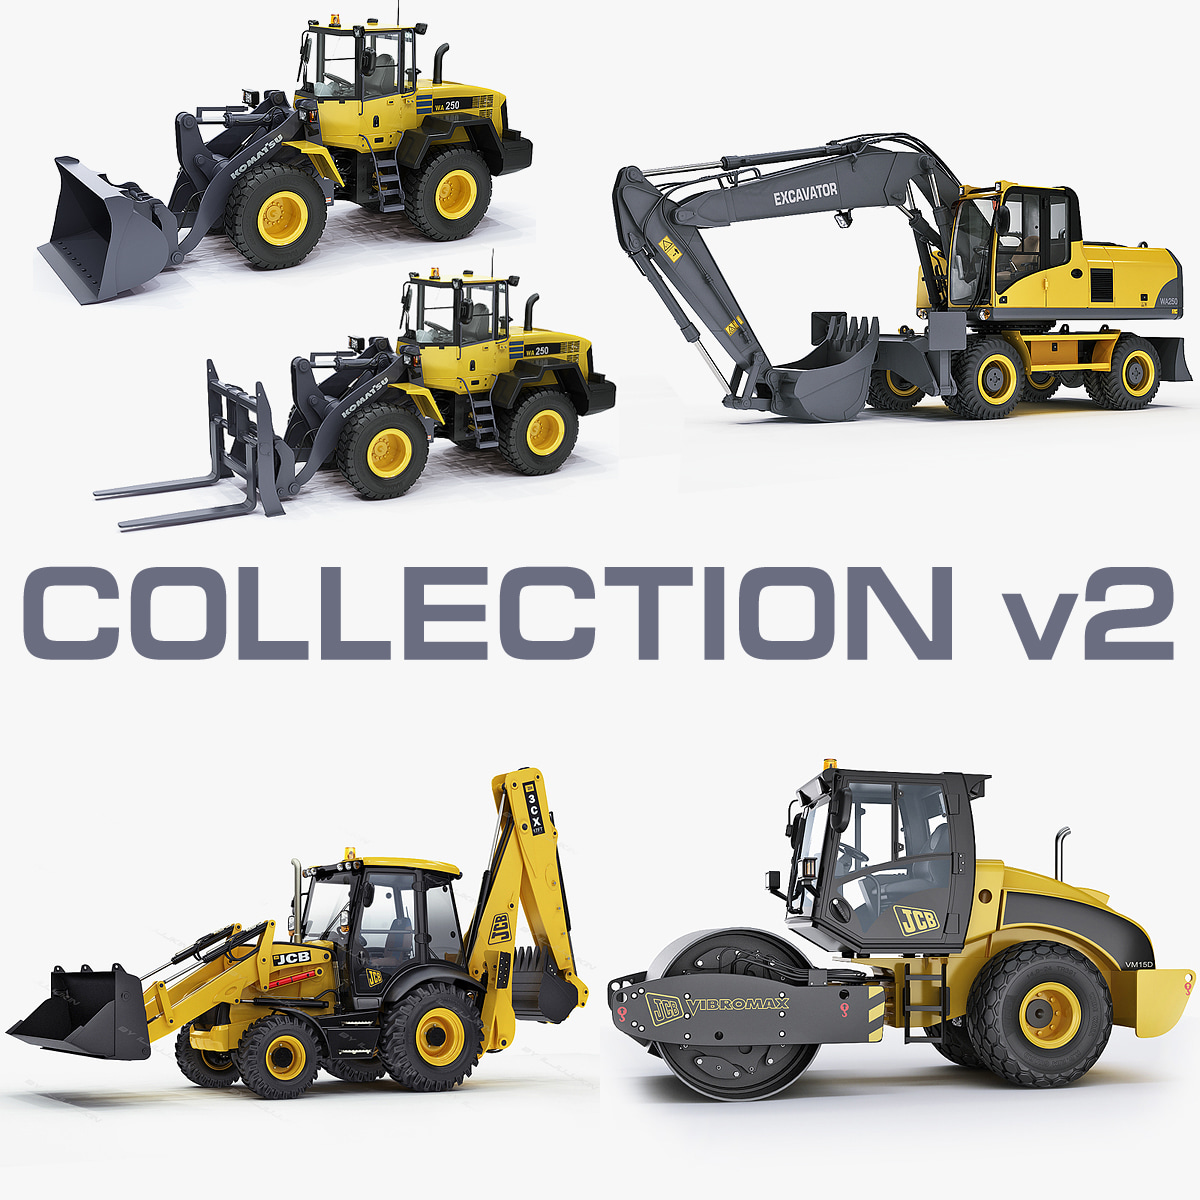 Collection_heavy_vehicle_v2.jpg